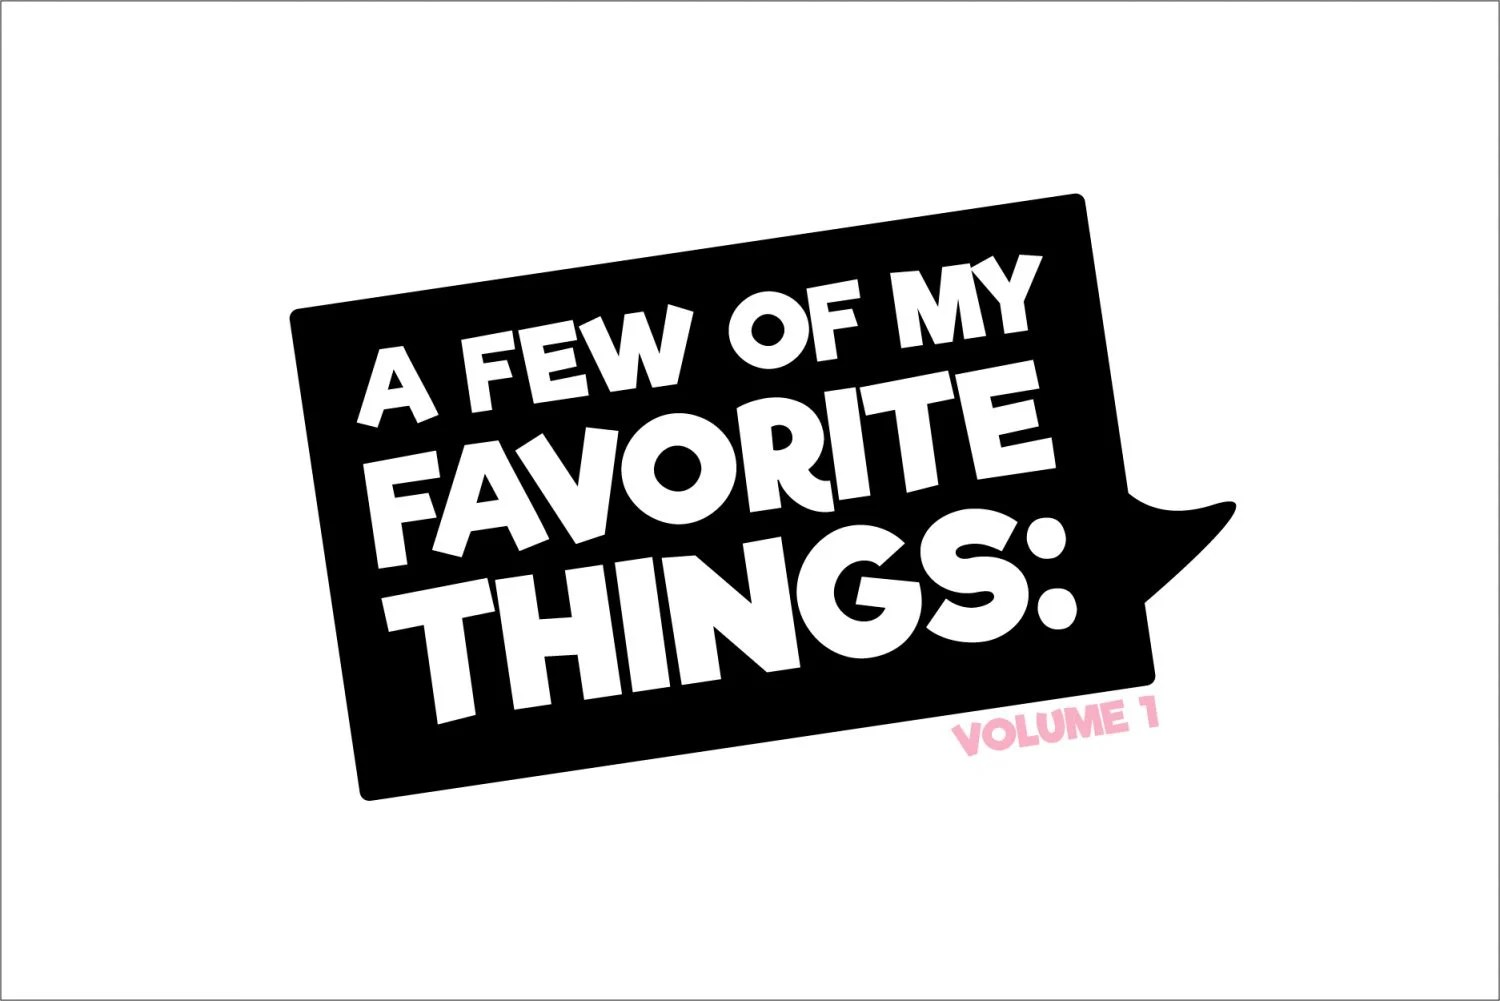 a few of my favorite things volume 1